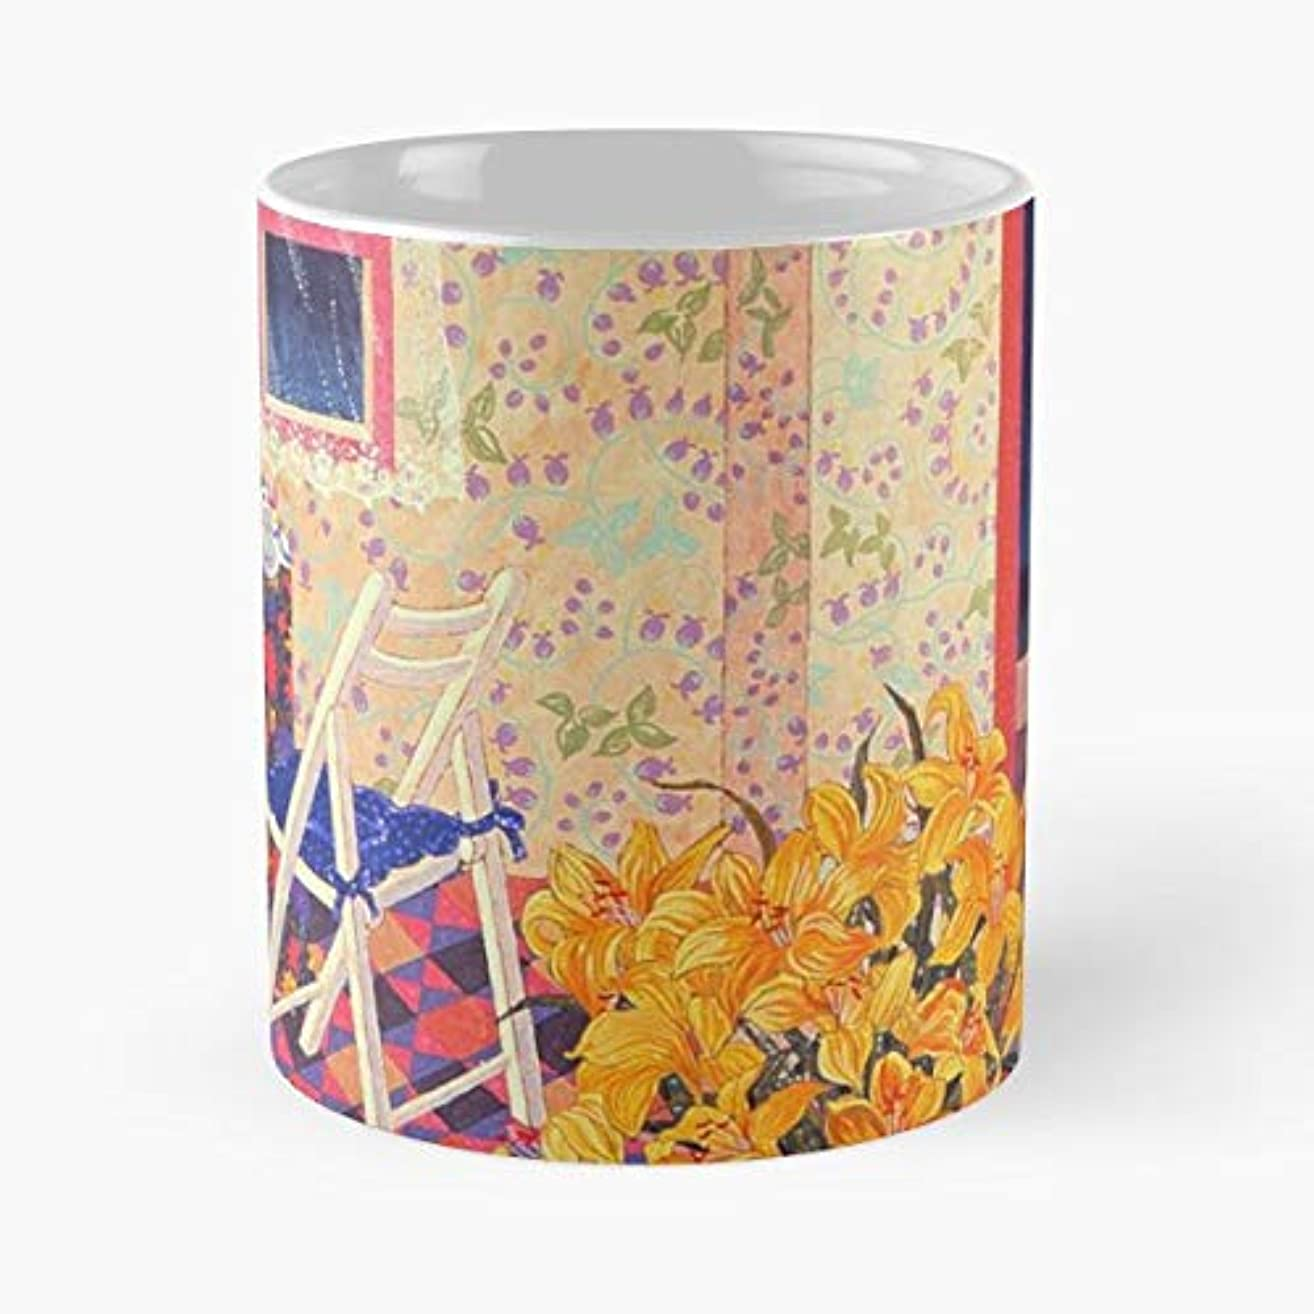 Asia Chinese Japanese Oriental - Coffee Mugs Unique Ceramic Novelty Cup For Holiday Days 11 Oz.